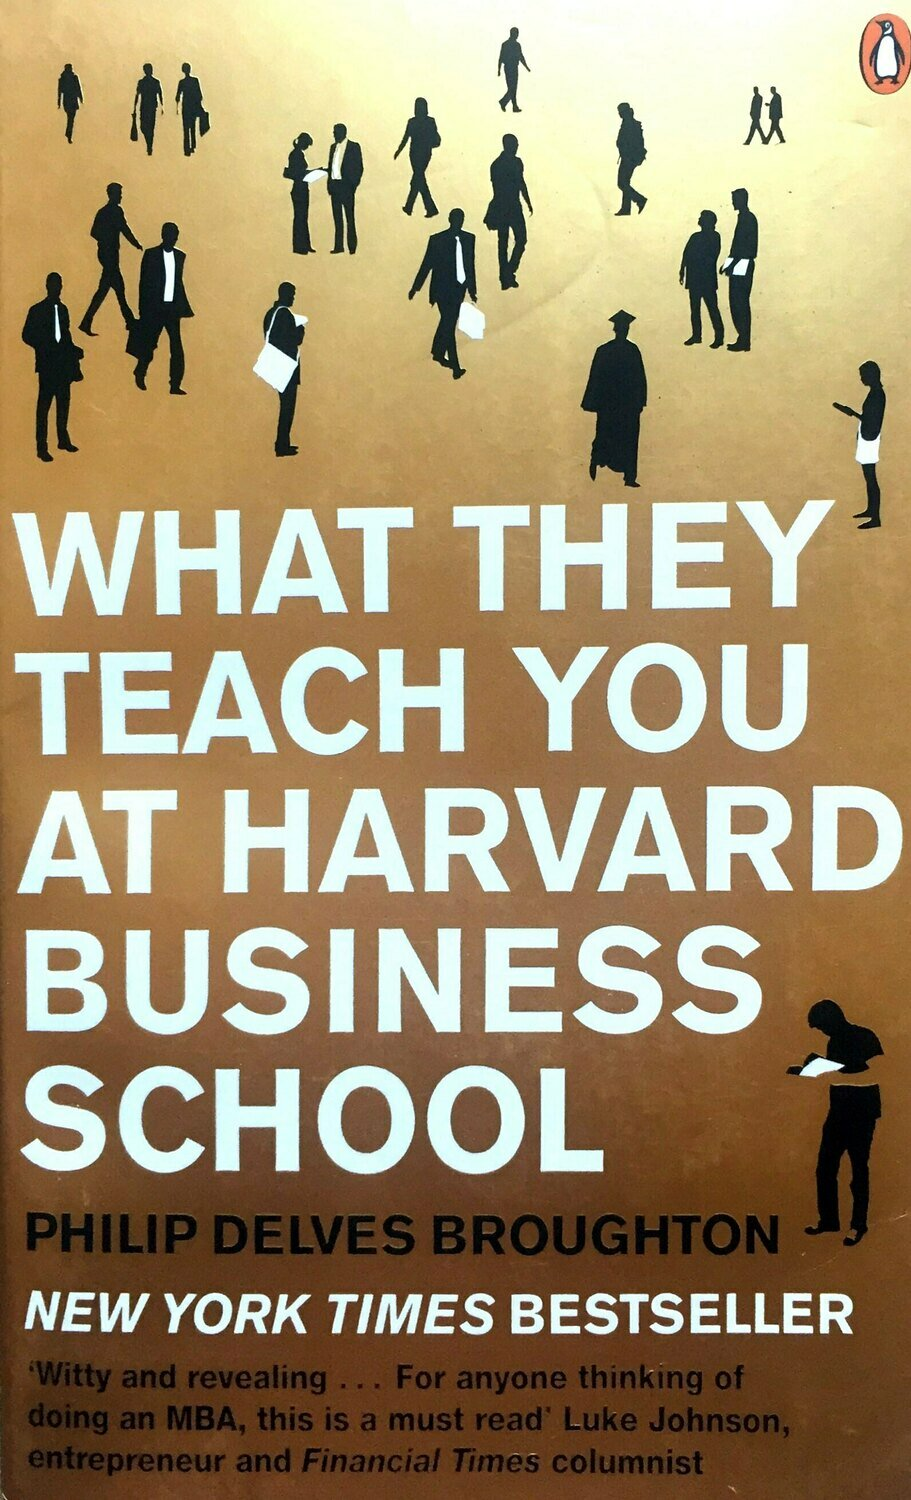 What They Teach You at Harvard Business School; Philip Delves Broughton